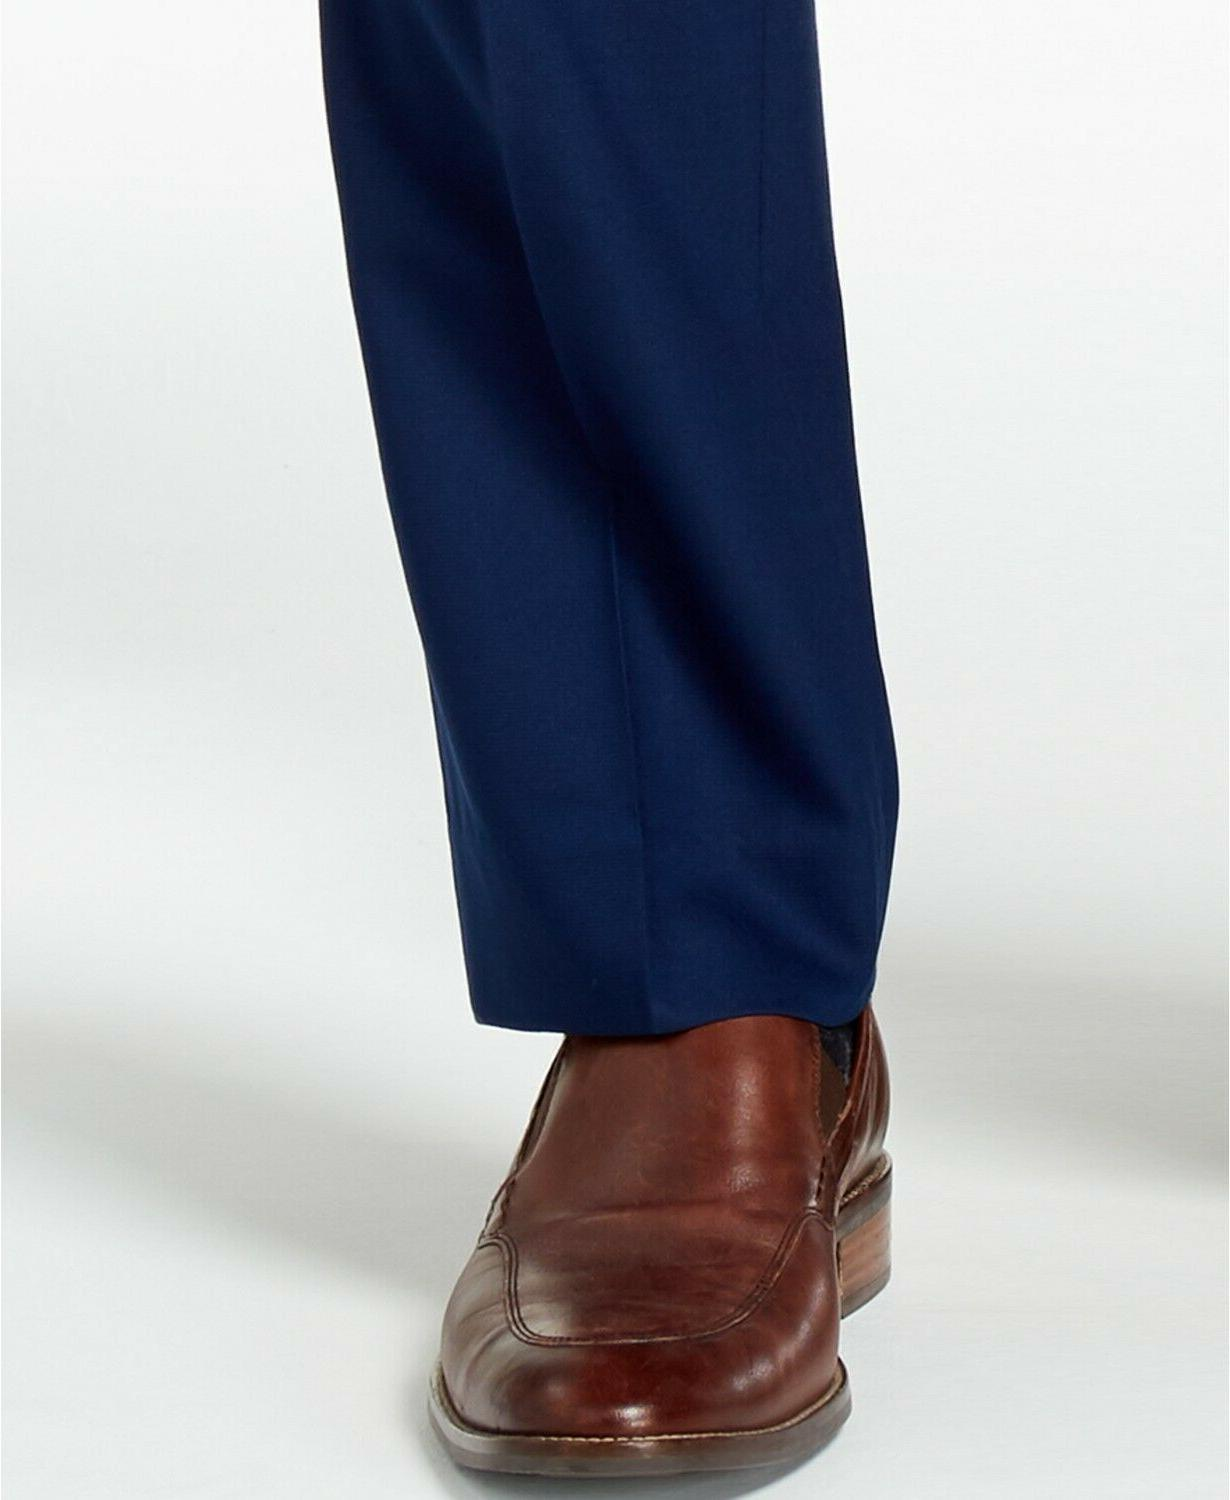 Kenneth Slim-Fit Blue Solid Dress Pants 29x32 NEW $95